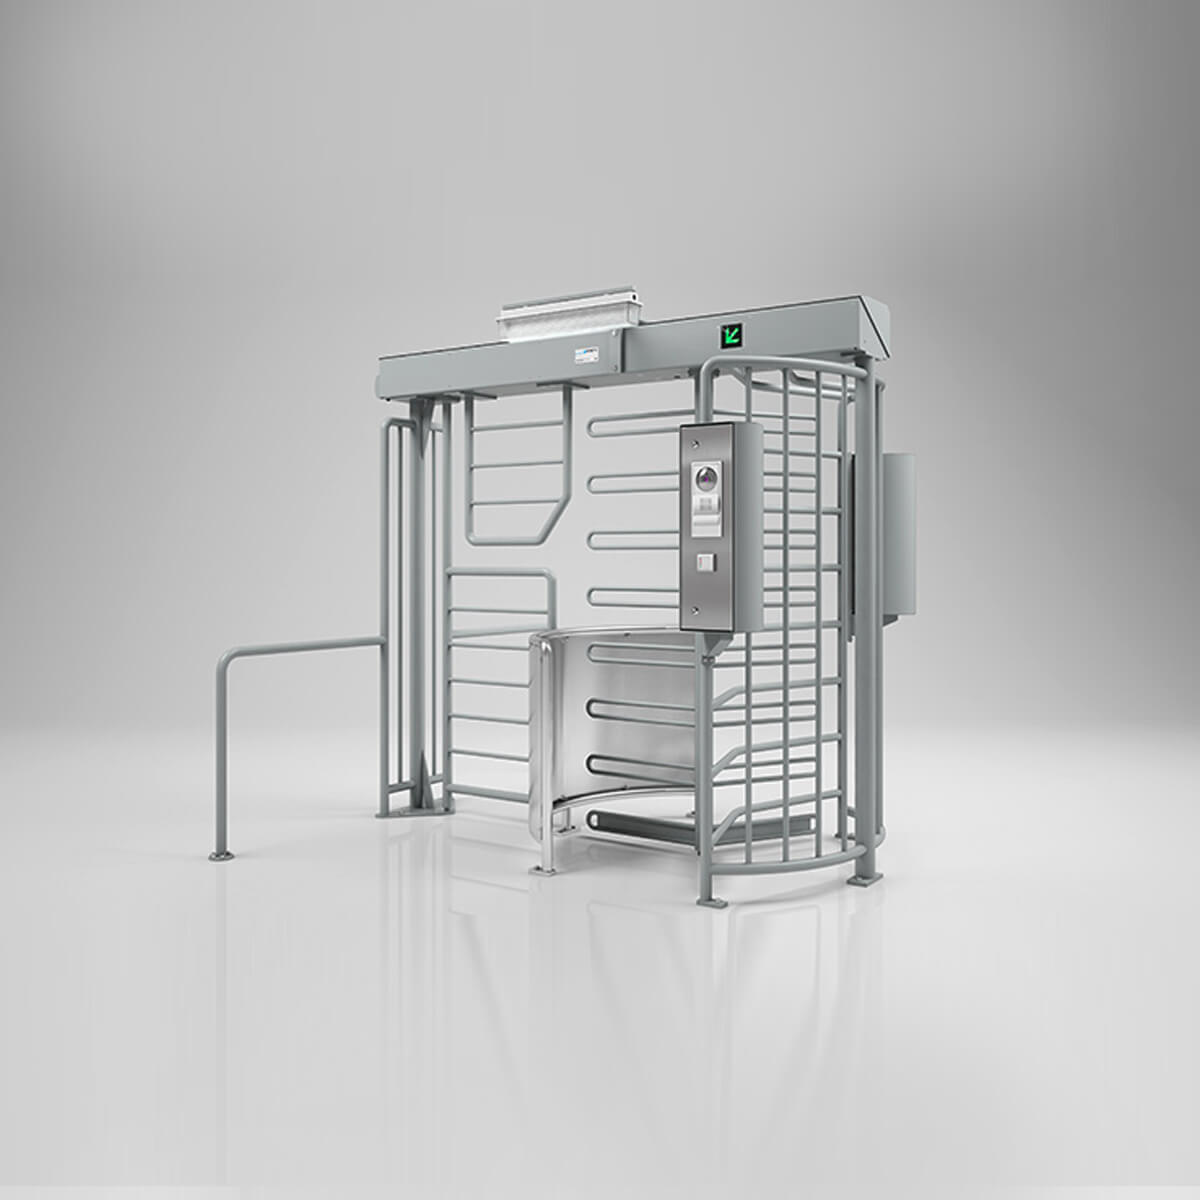 Buy Magnetic Perimeter Protection MPB turnstile in UAE, Qatar and Saudi Arabia